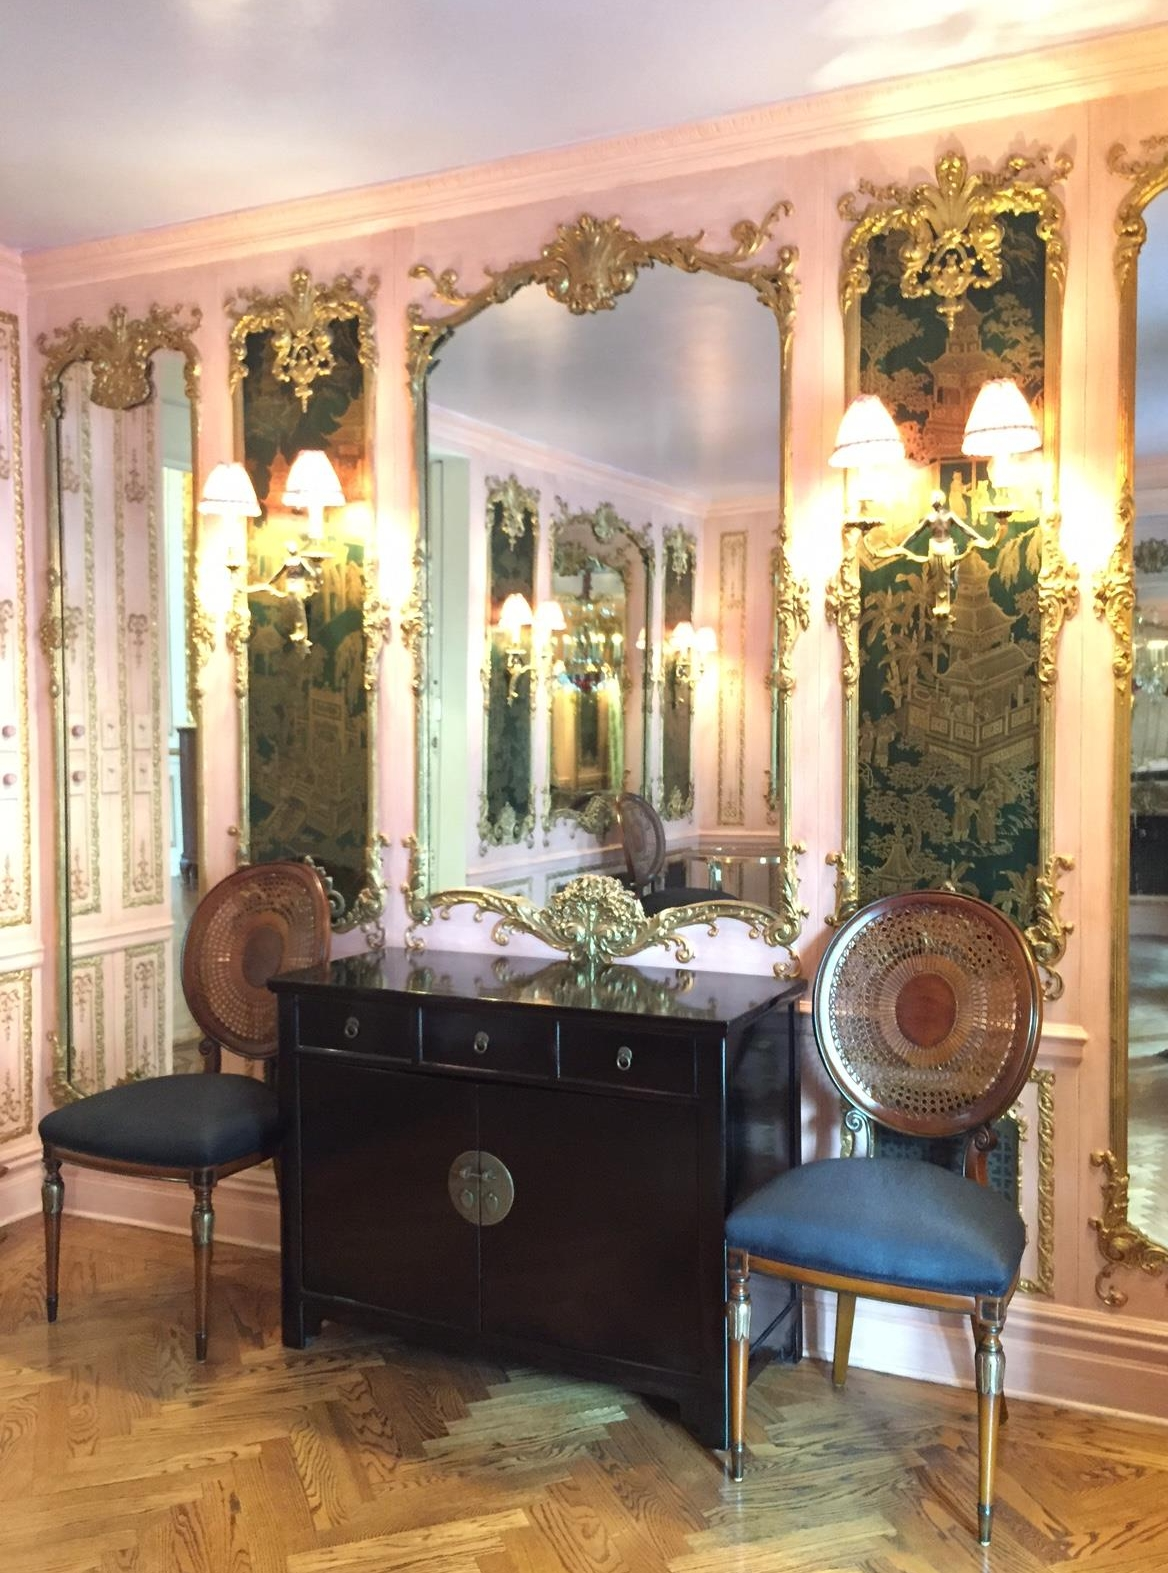 Interiors designed for Chinoiserie passage, New York City